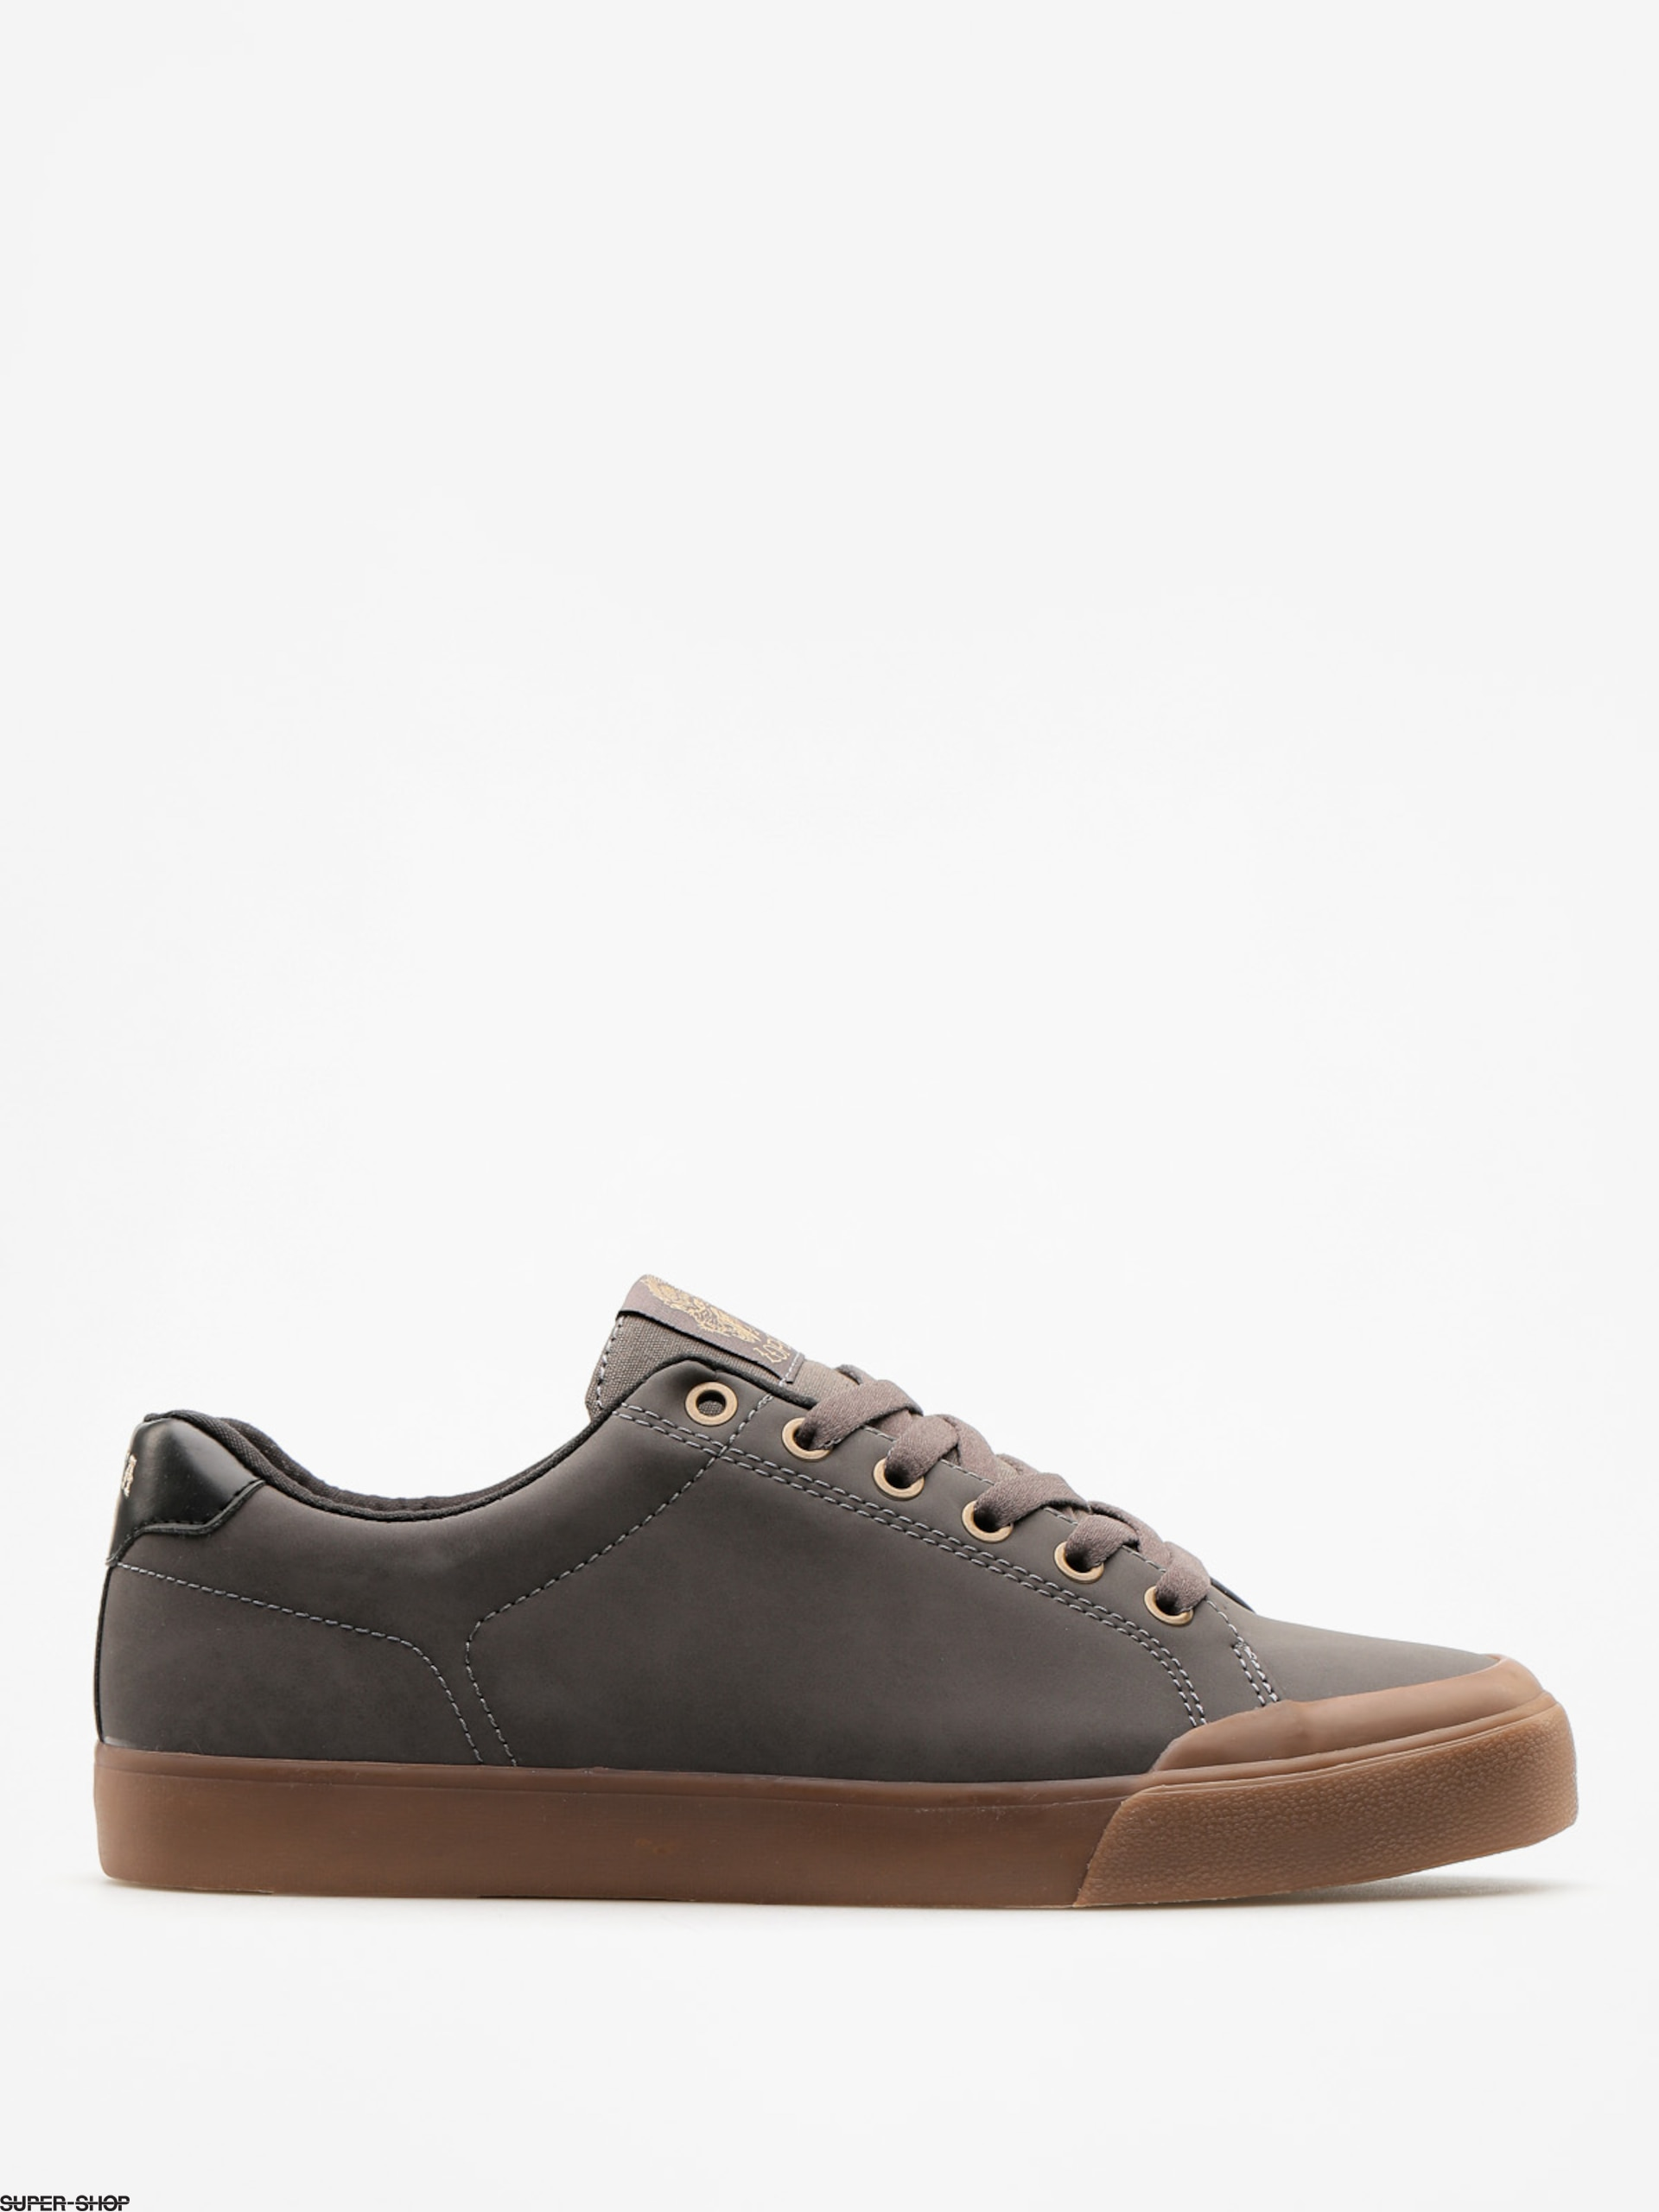 Circa Shoes Lopez 50R (graphite/gum)